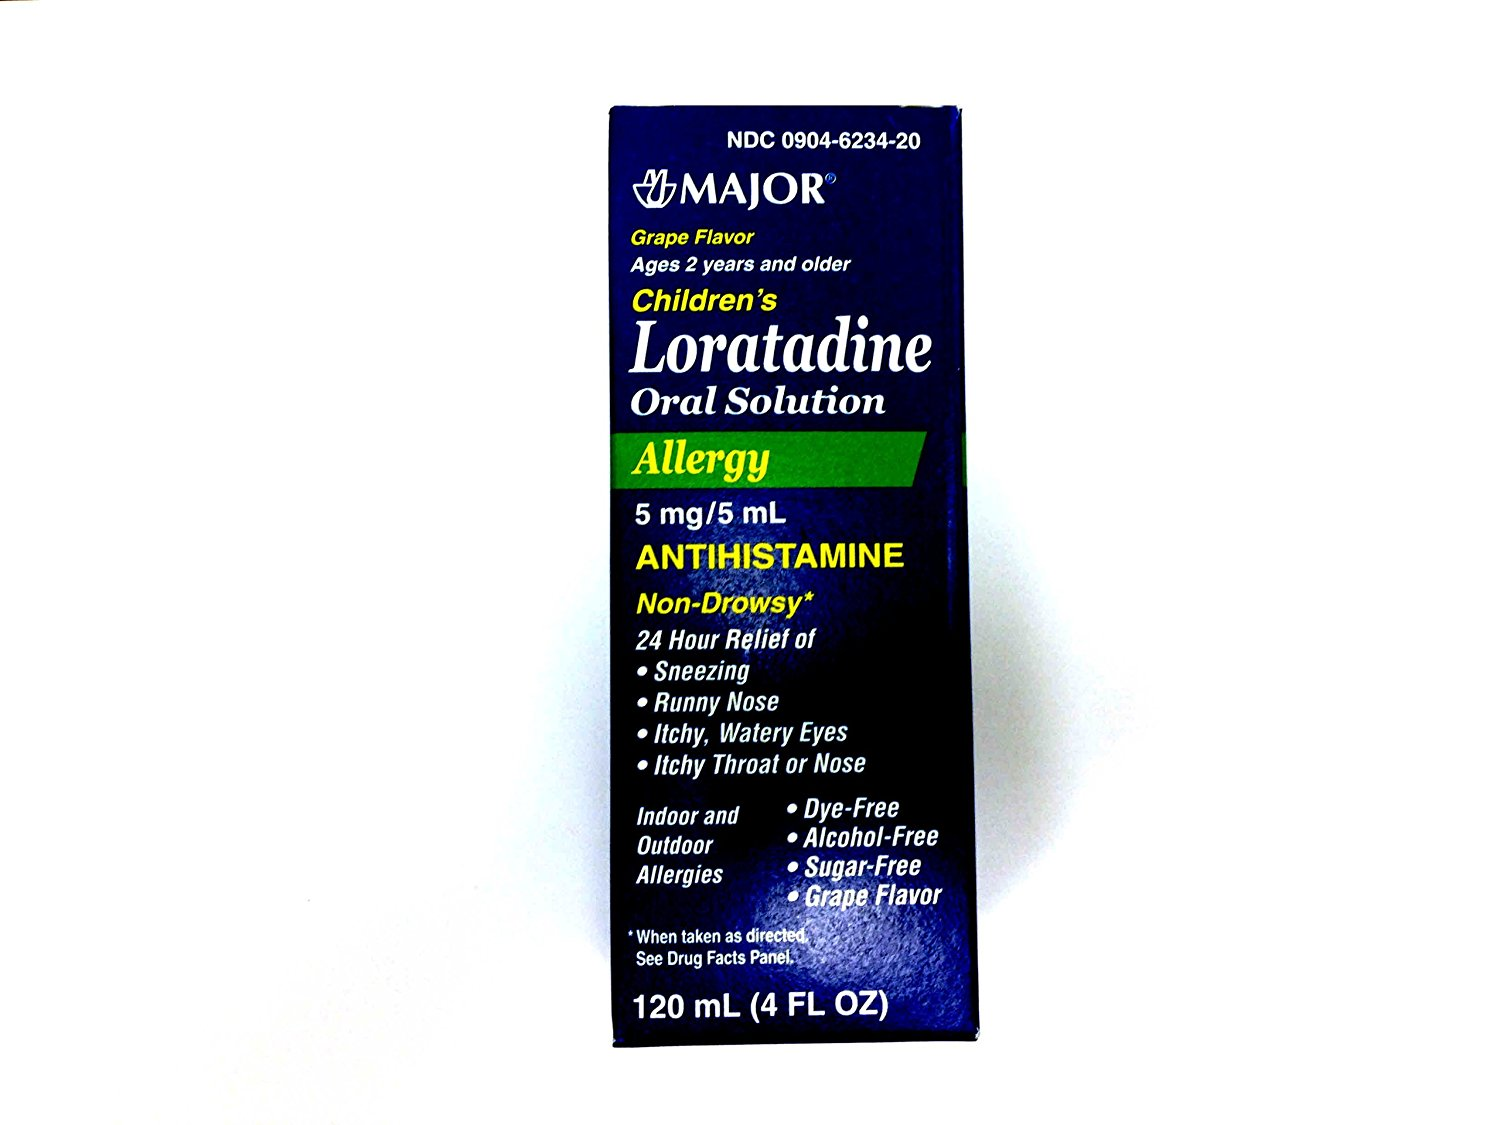 MAJOR LORATADINE Chilrden Allergy 24 Hour Relief Antihistamin 5mg/5ml Grape Flavor,